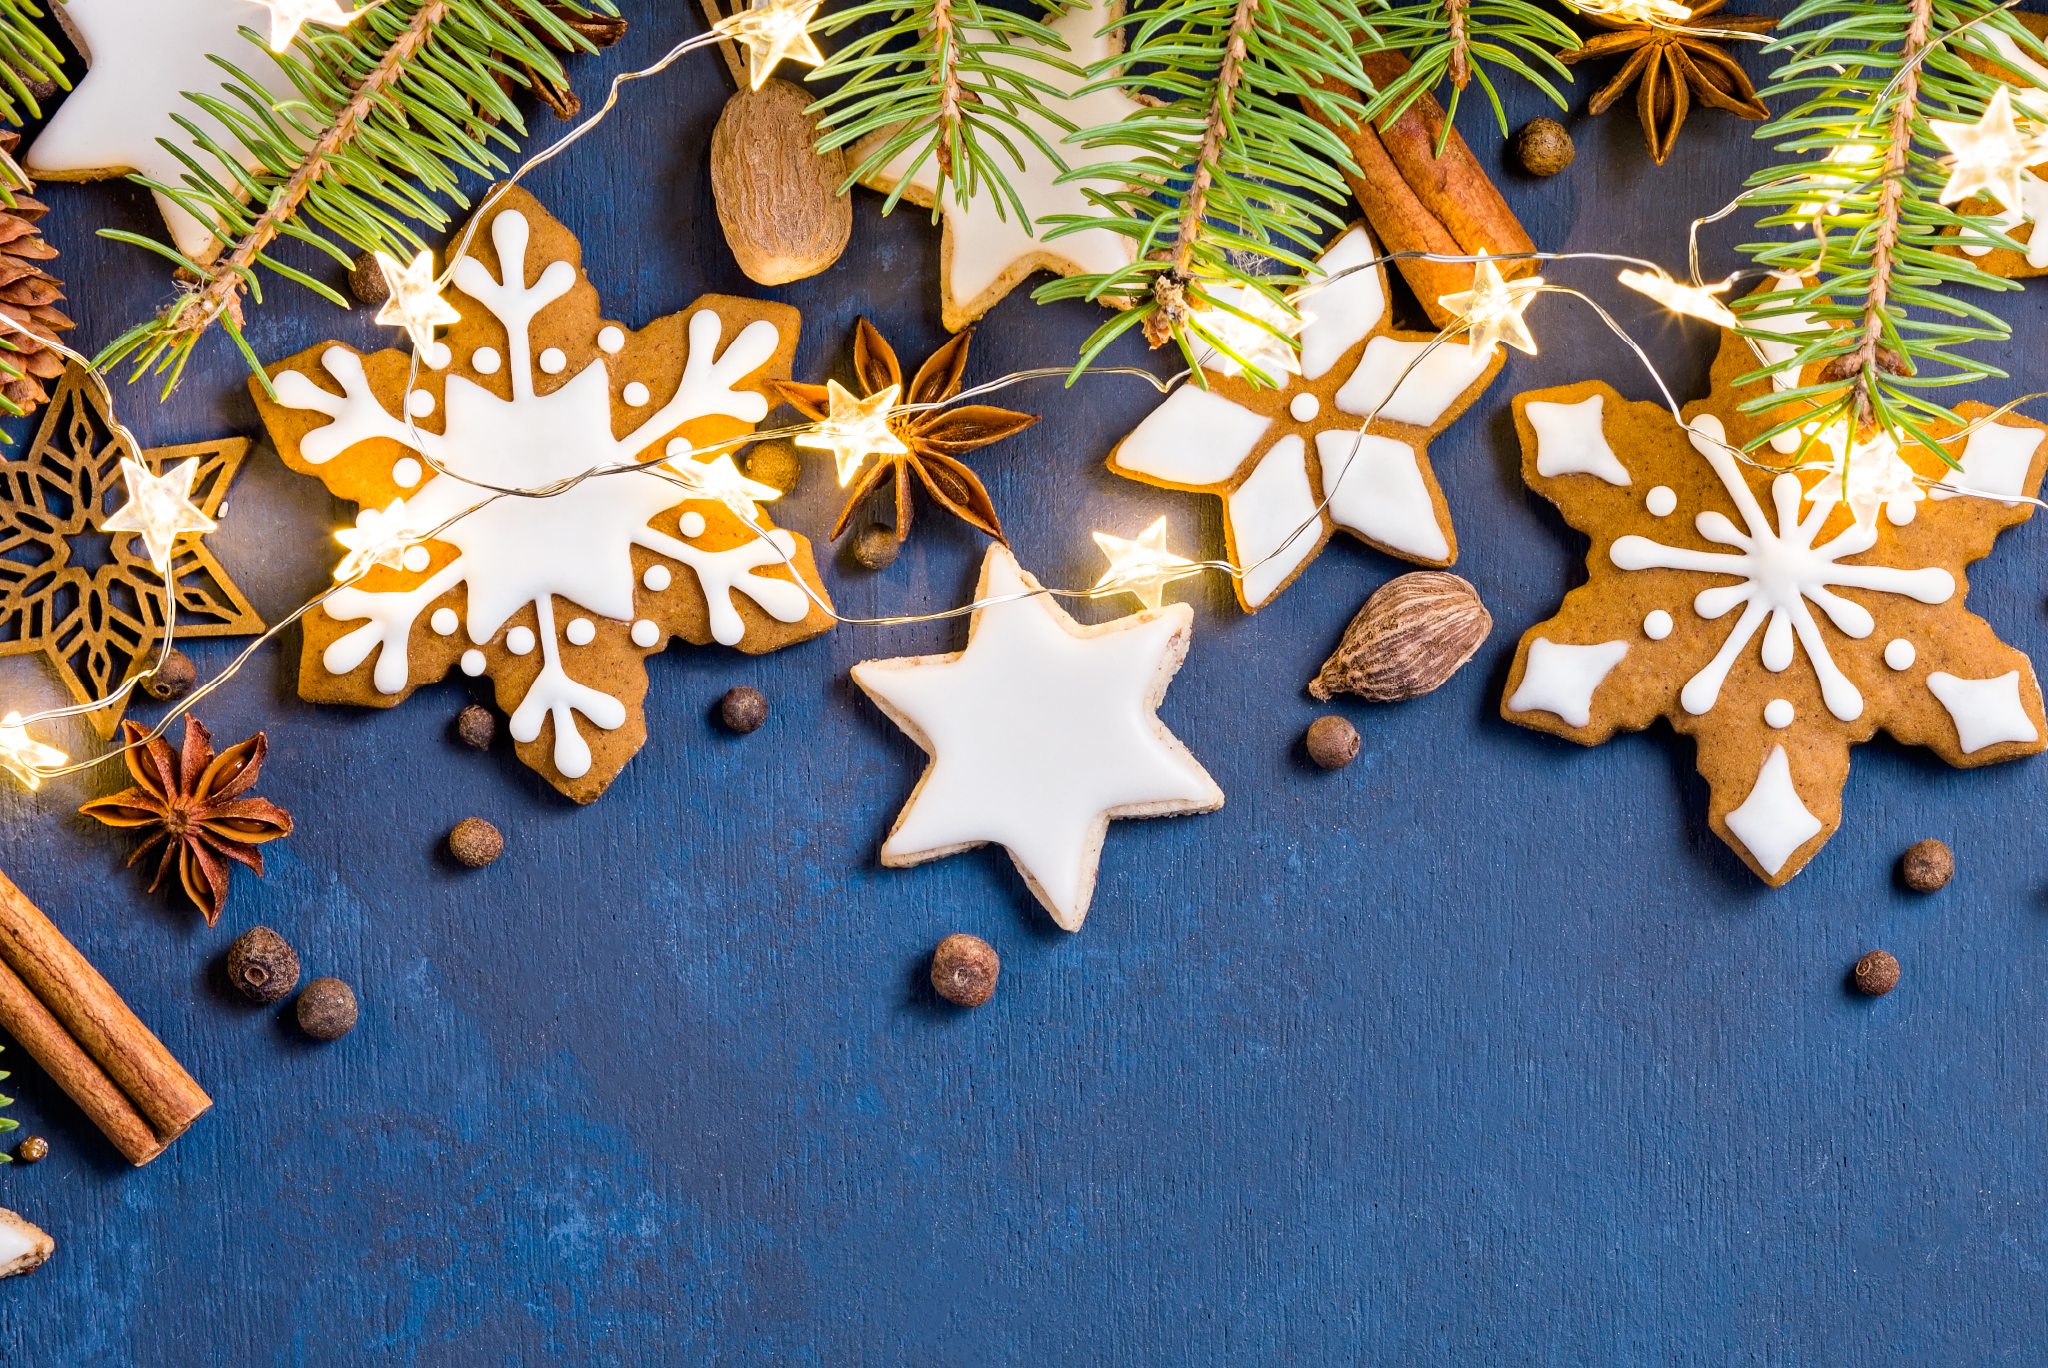 blue background with iced snowflake shaped cookies, greenery,